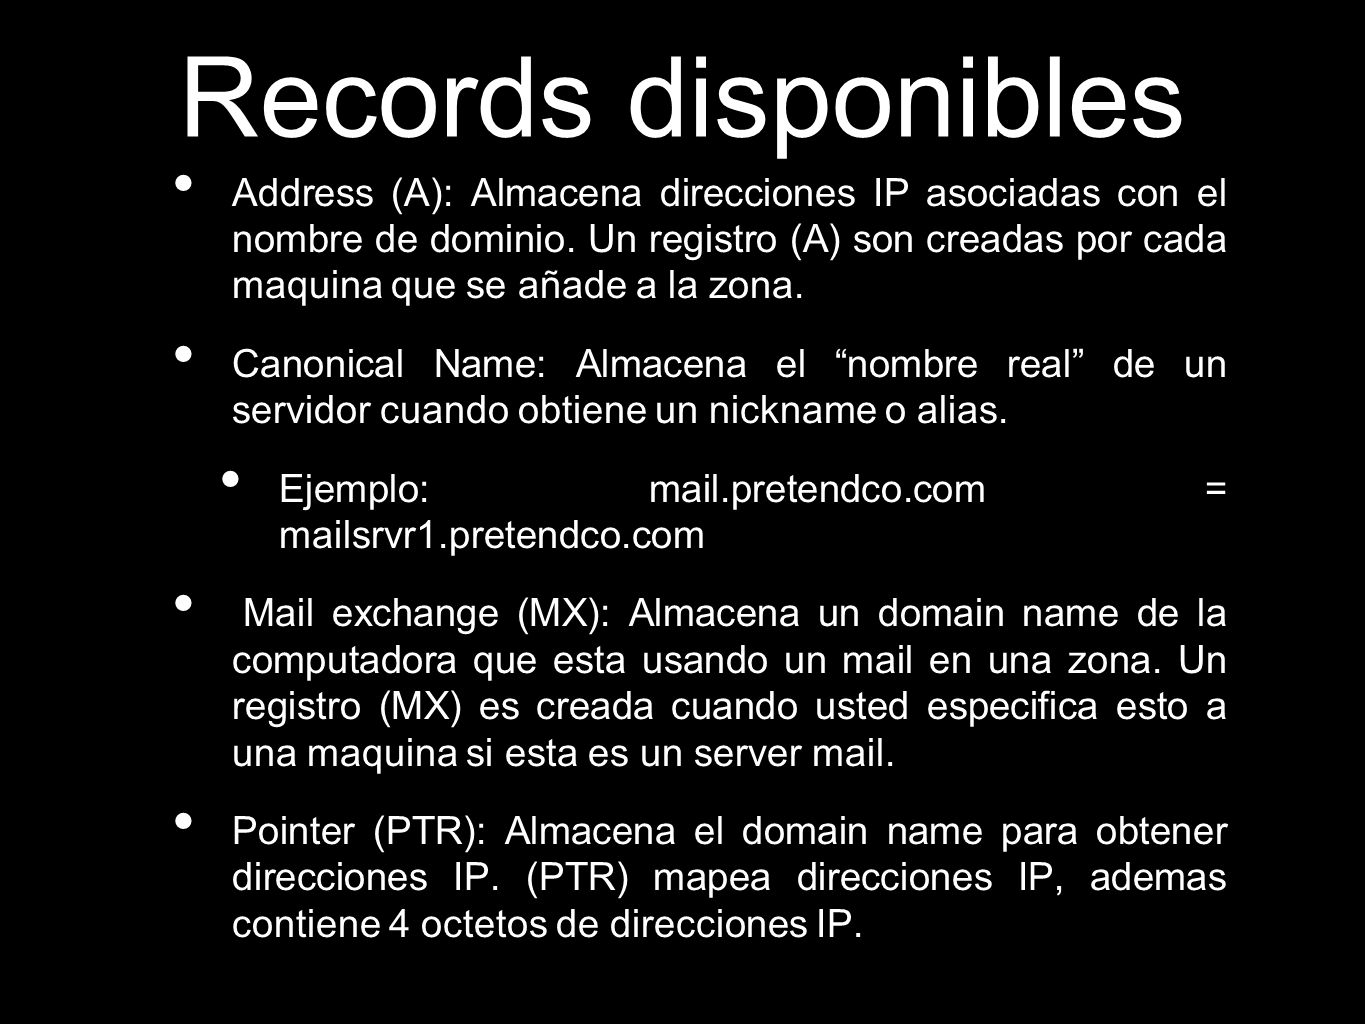 Records disponibles